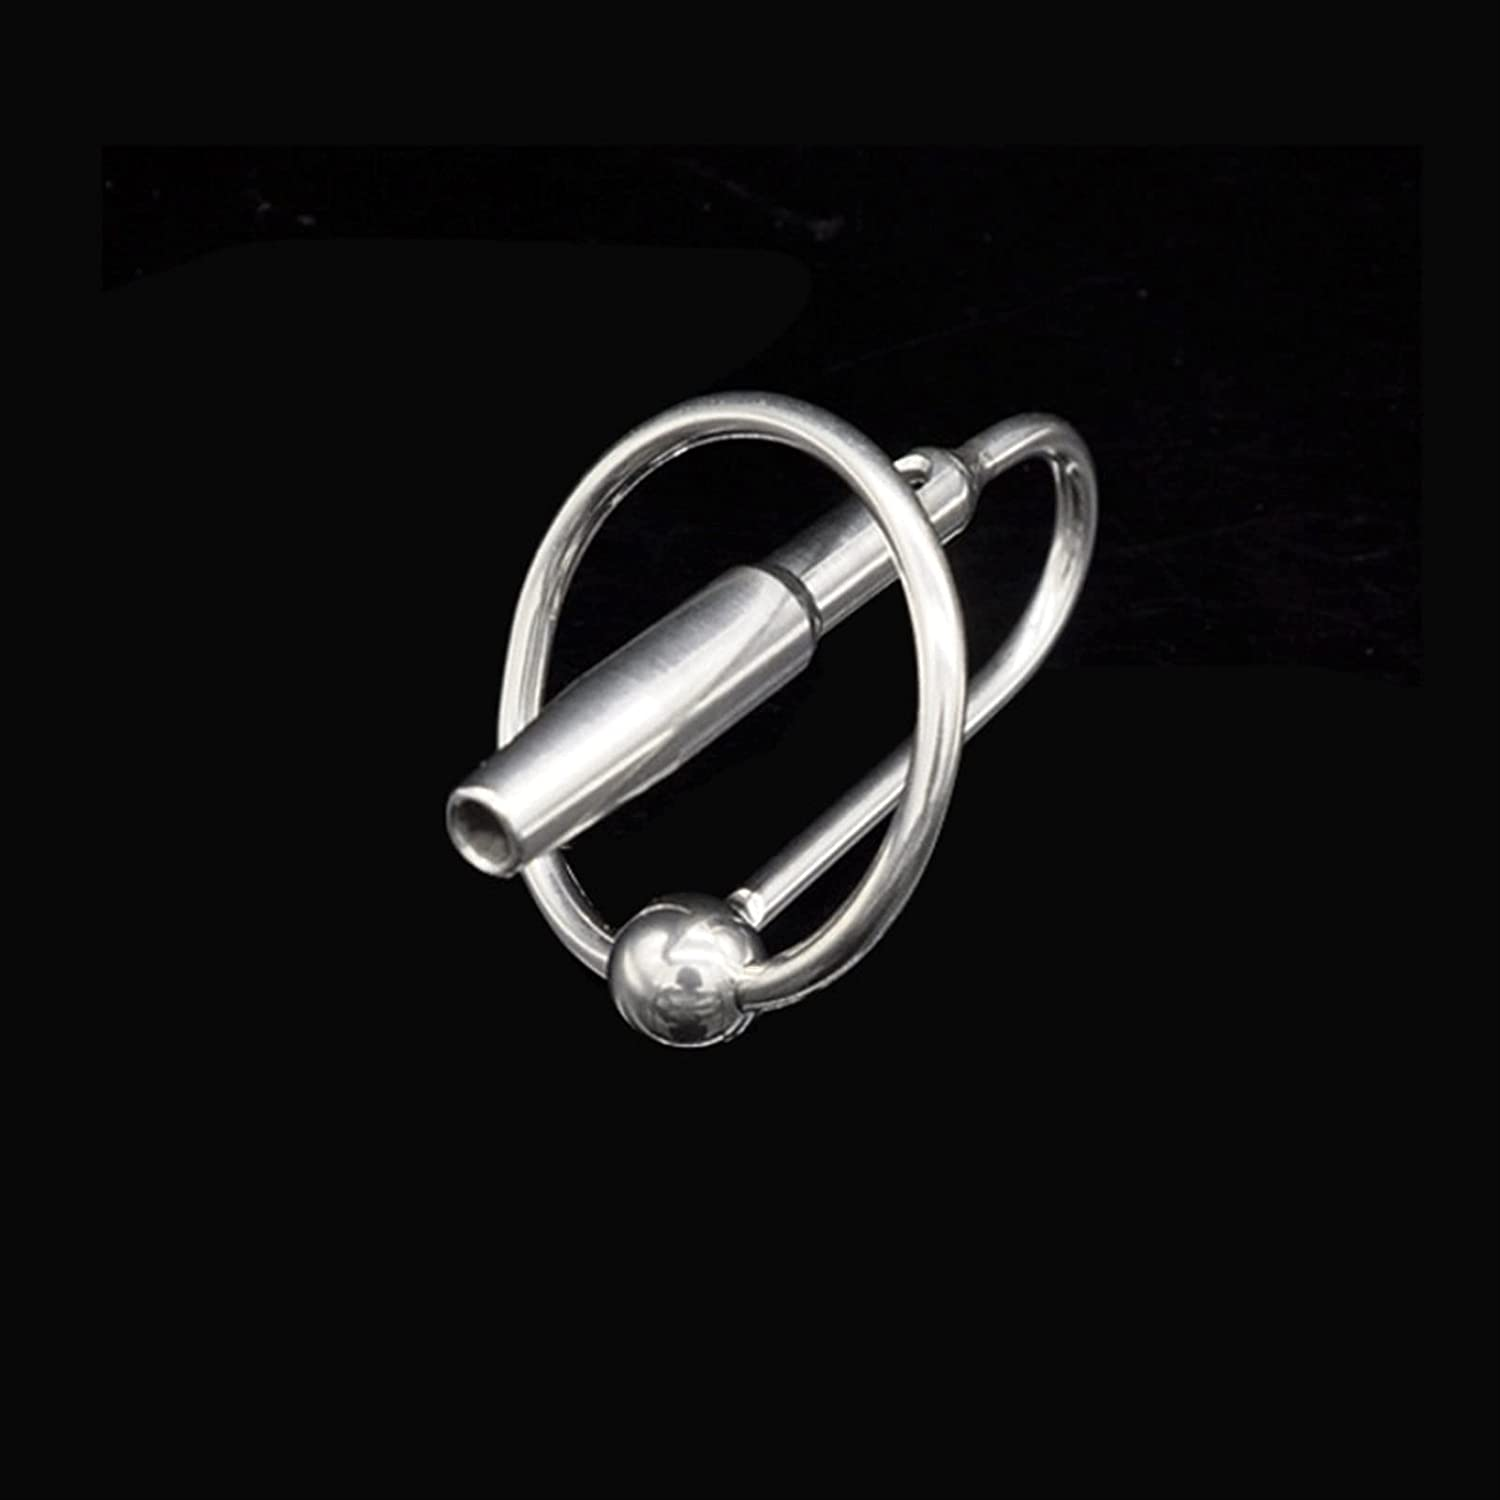 Max 42% OFF chandi Small Urethral Sounds with Glans G-spot Men Ring Toy Charlotte Mall for